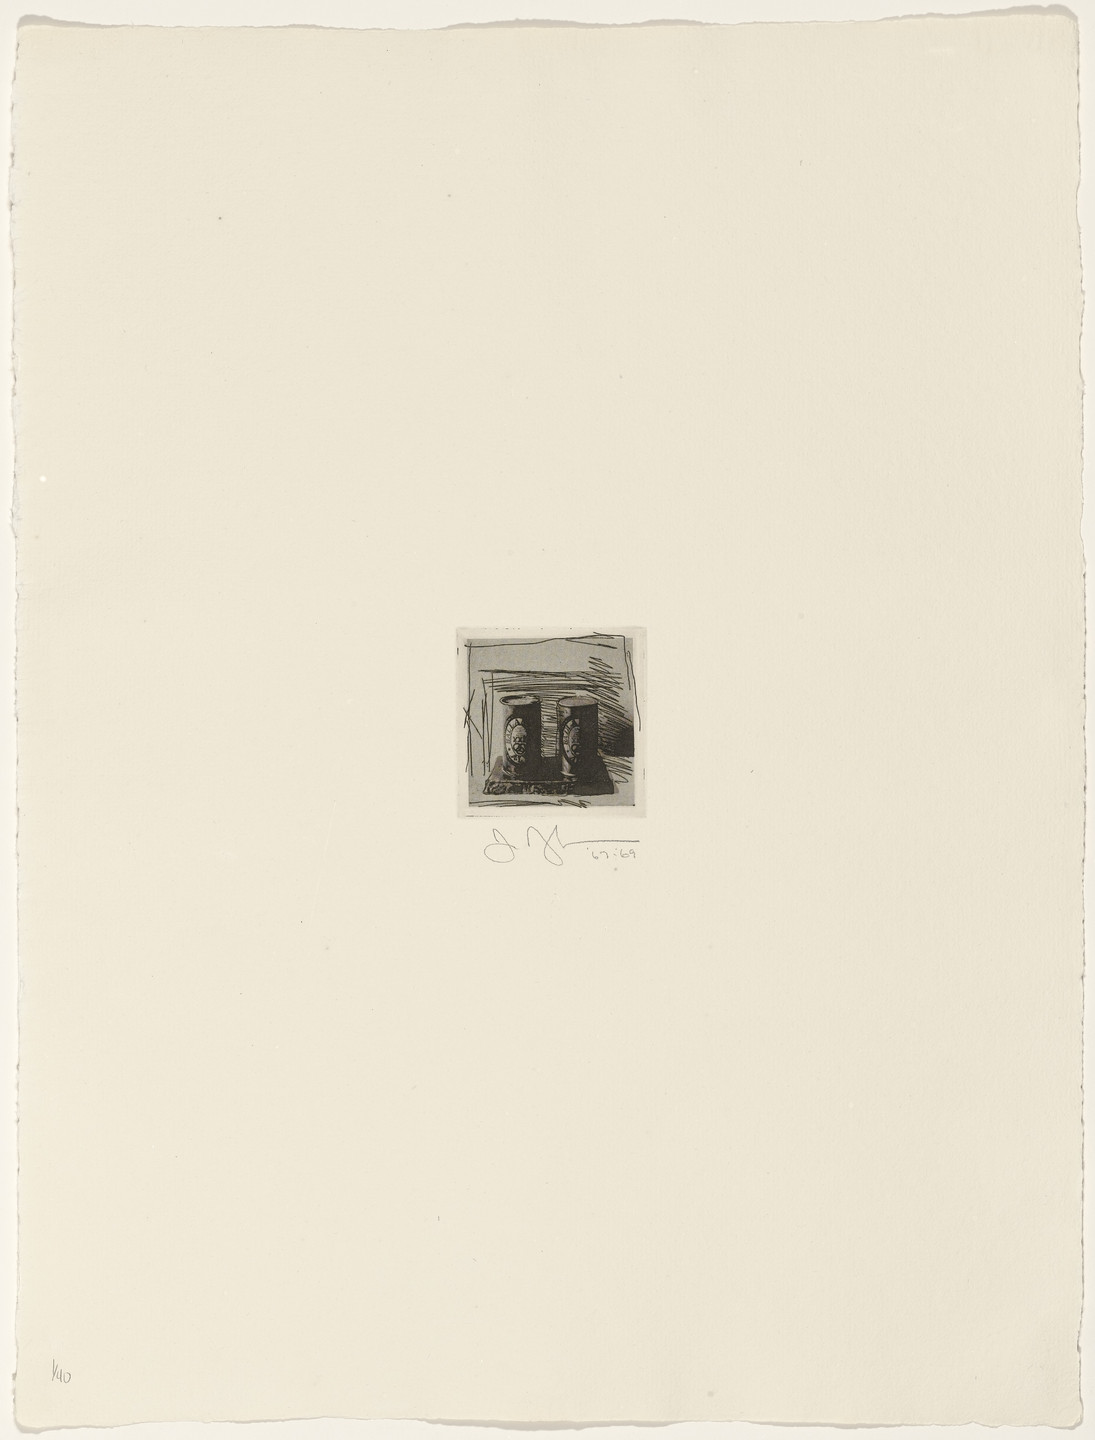 Jasper Johns. Painted Bronze from 1st Etchings-2nd State. 1967–69, published 1969